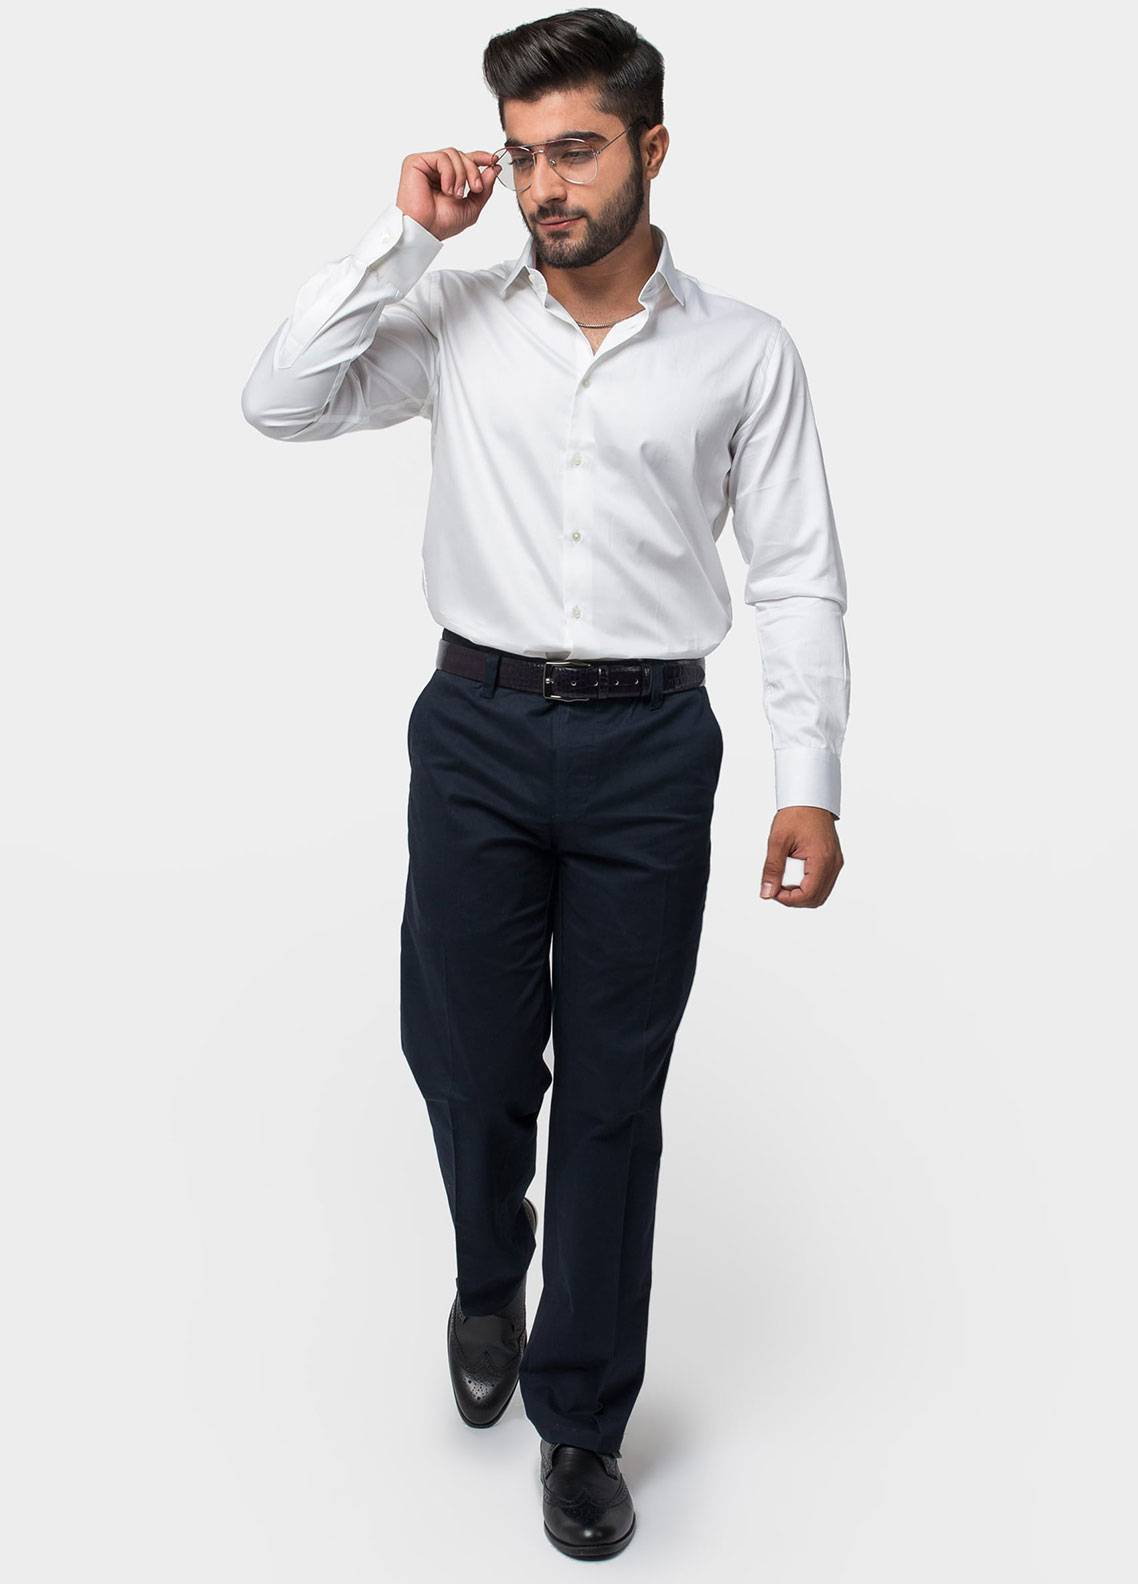 Brumano Cotton Formal Trousers for Men -  BRM-50-016